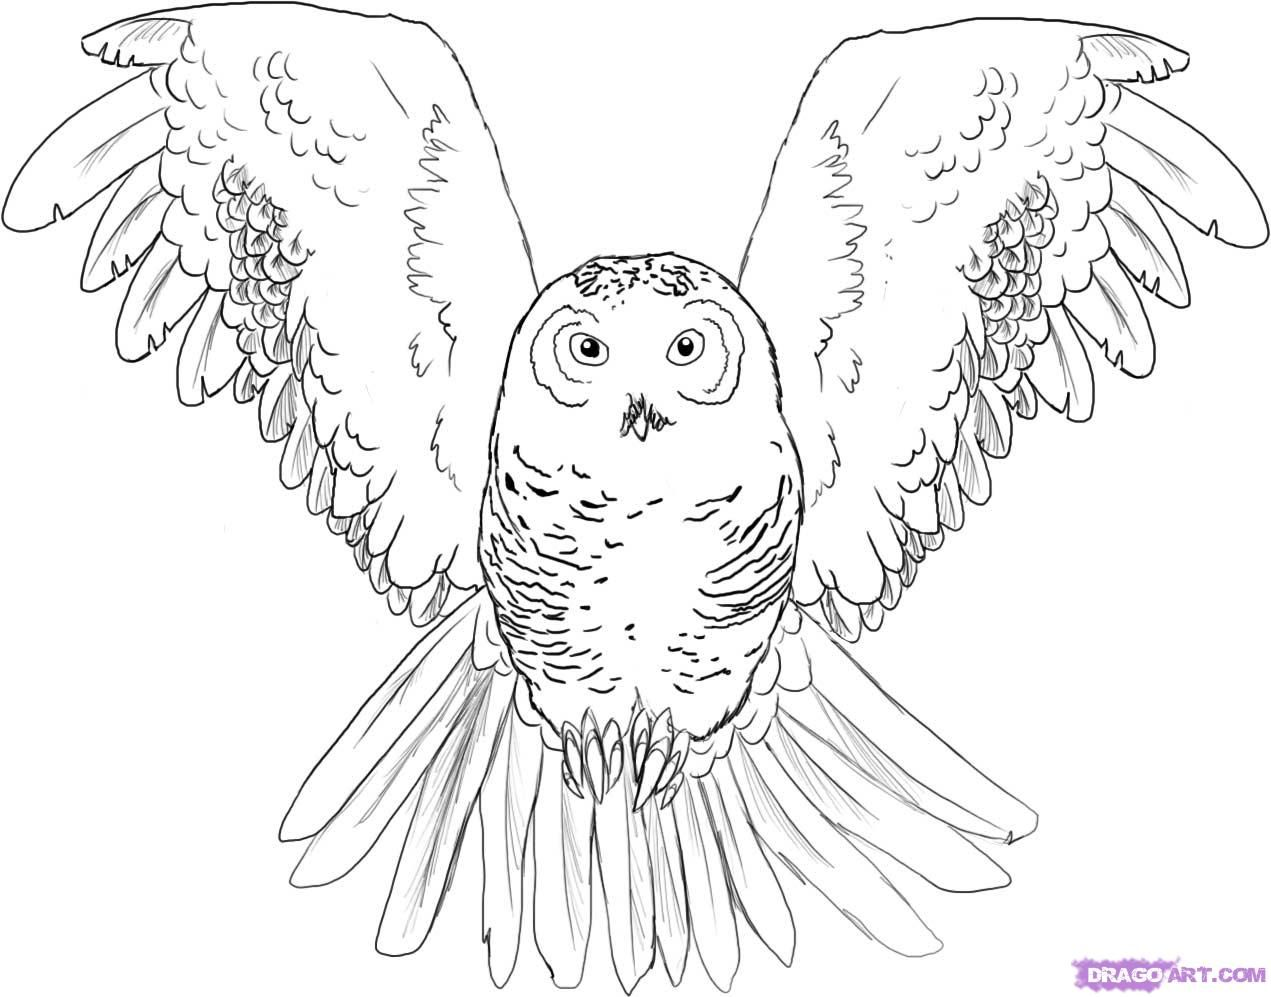 how to draw an owl in two easy steps